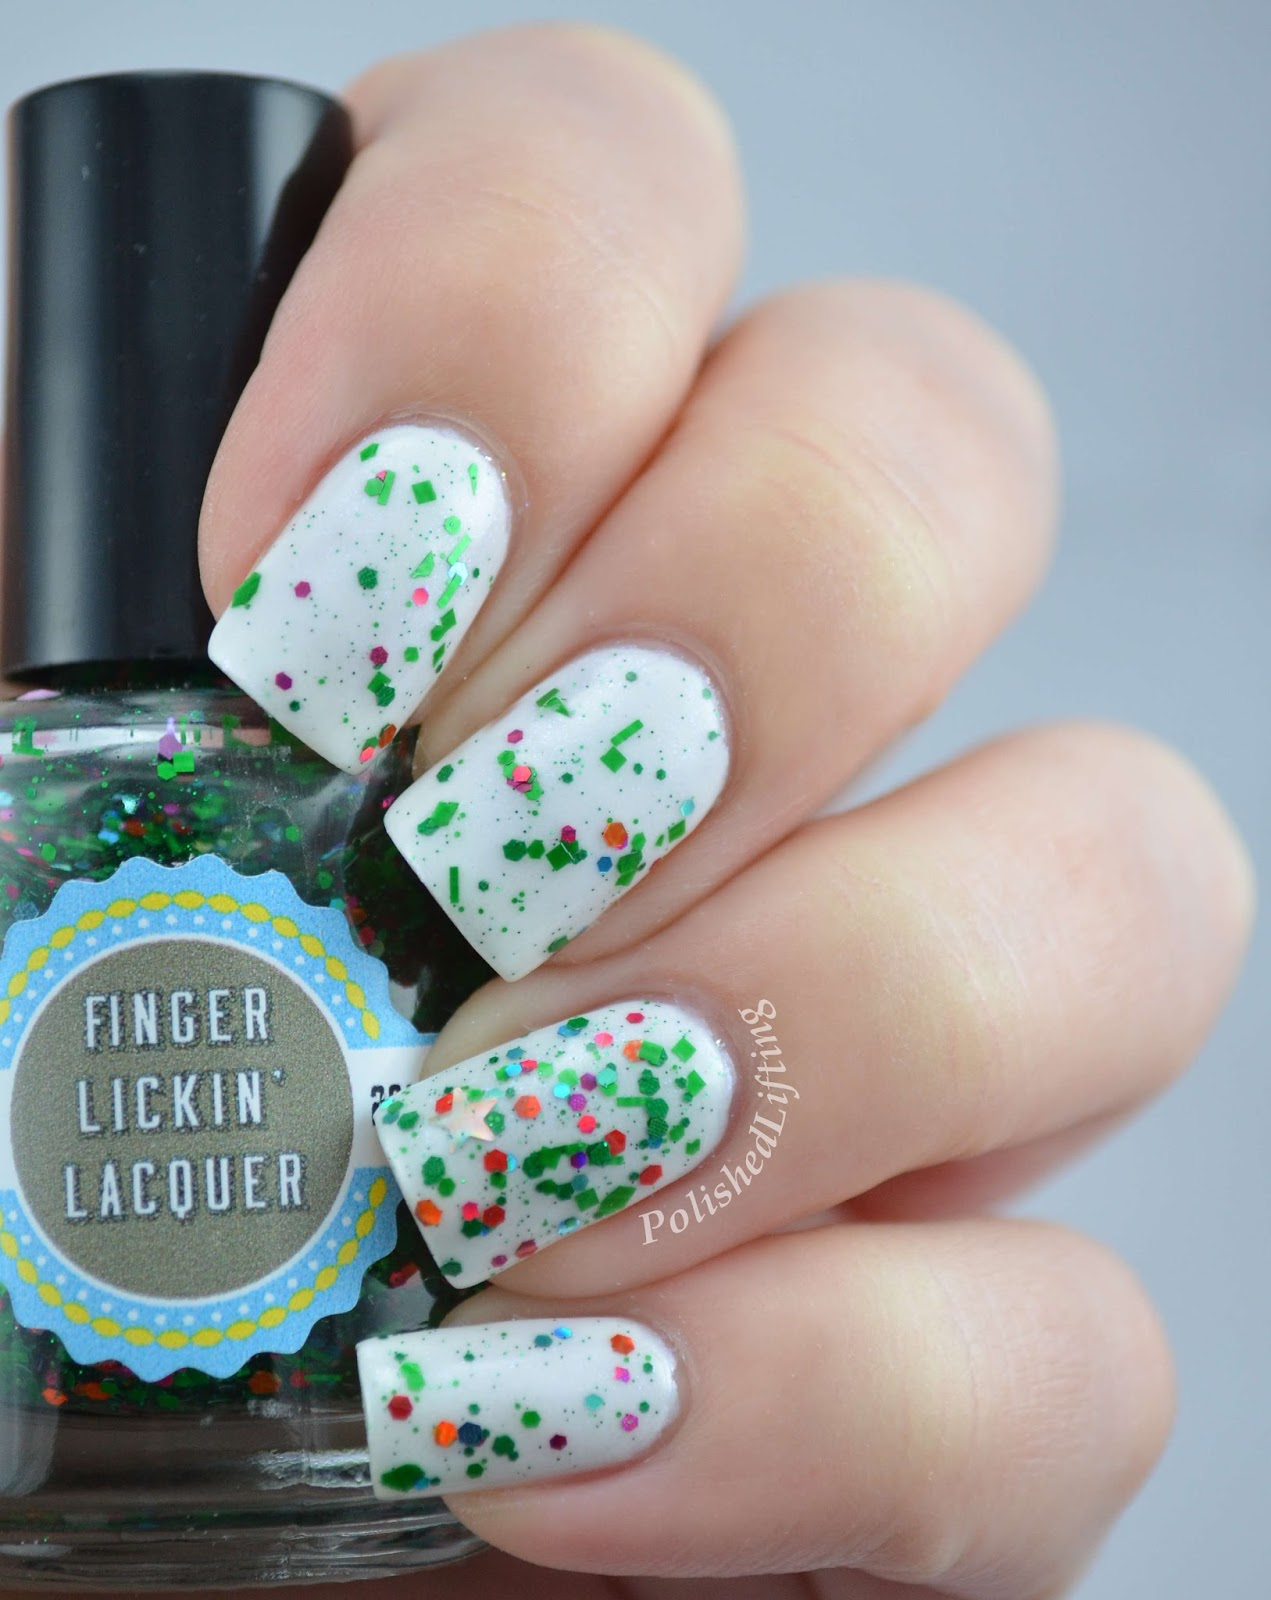 Finger Lickin' Lacquer Tree Trimmings